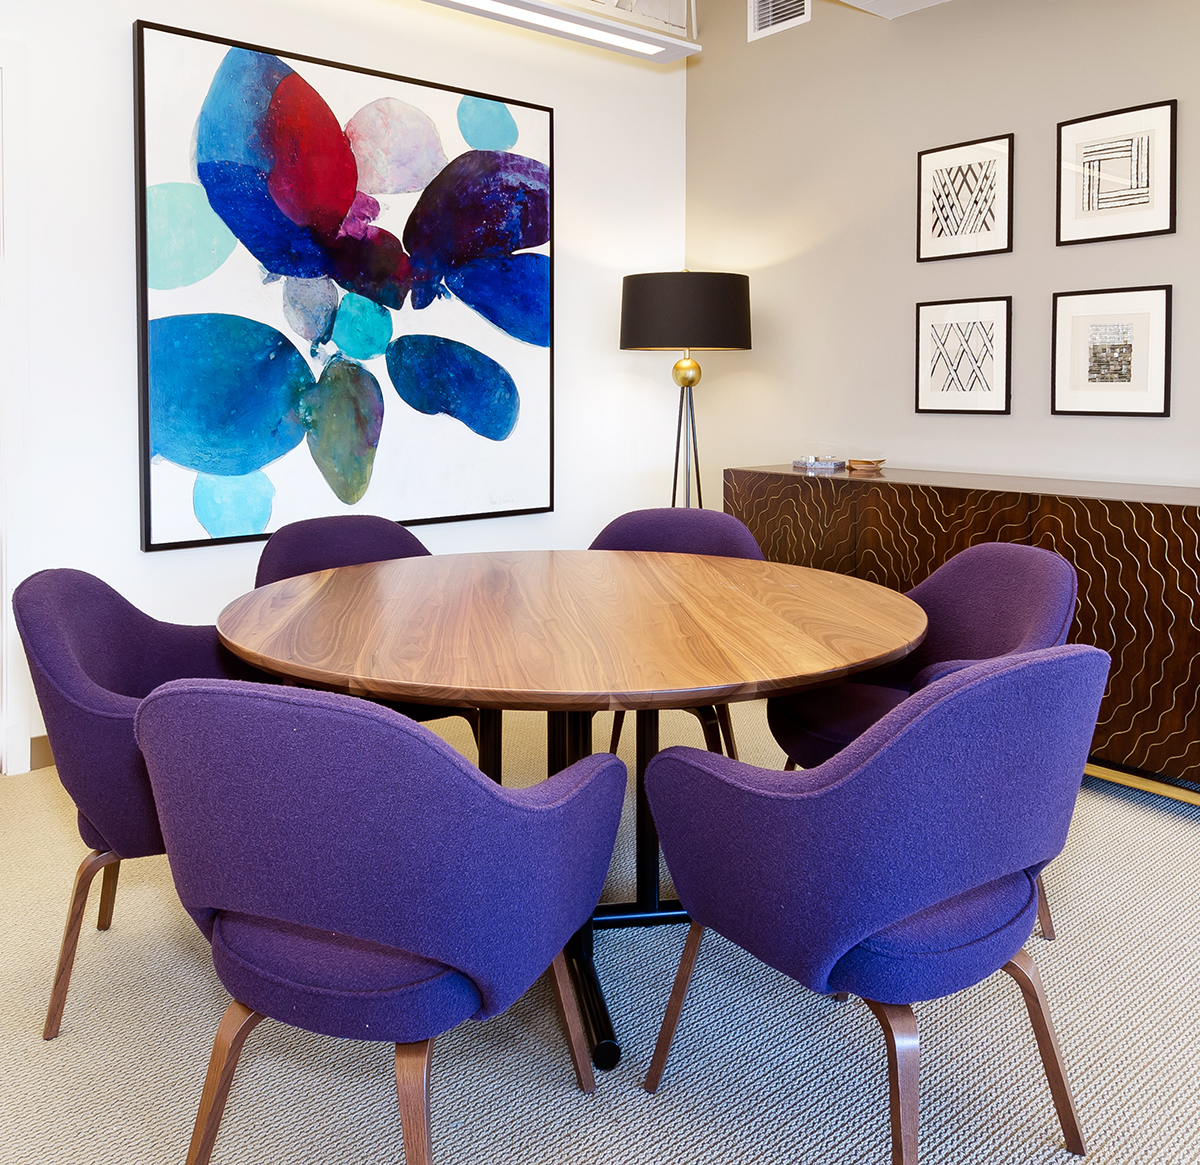 3d Textured Architextural Wall Panels Miami Fort Lauderdale Florida besides Reform Table additionally Round Conference Table as well Cameo 2 Bed moreover Steelcase Frameone Loop Bench Desks P435. on conference table and chairs